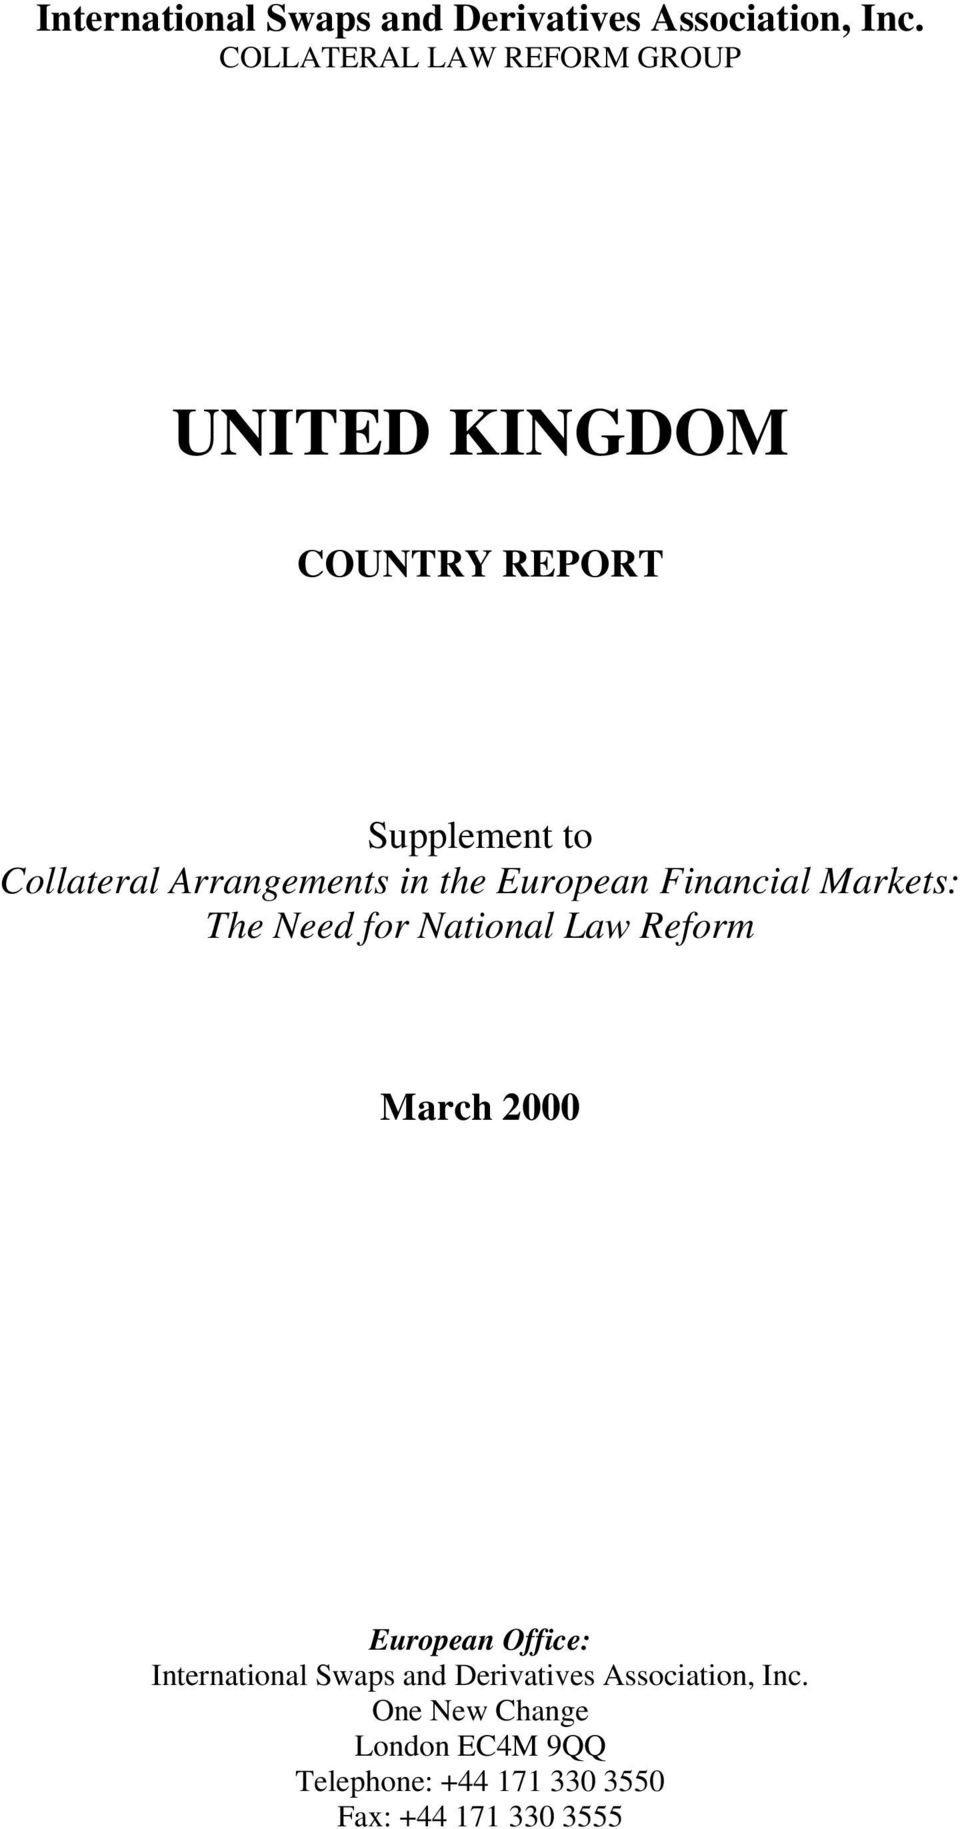 Arrangements in the European Financial Markets: The Need for National Law Reform March 2000